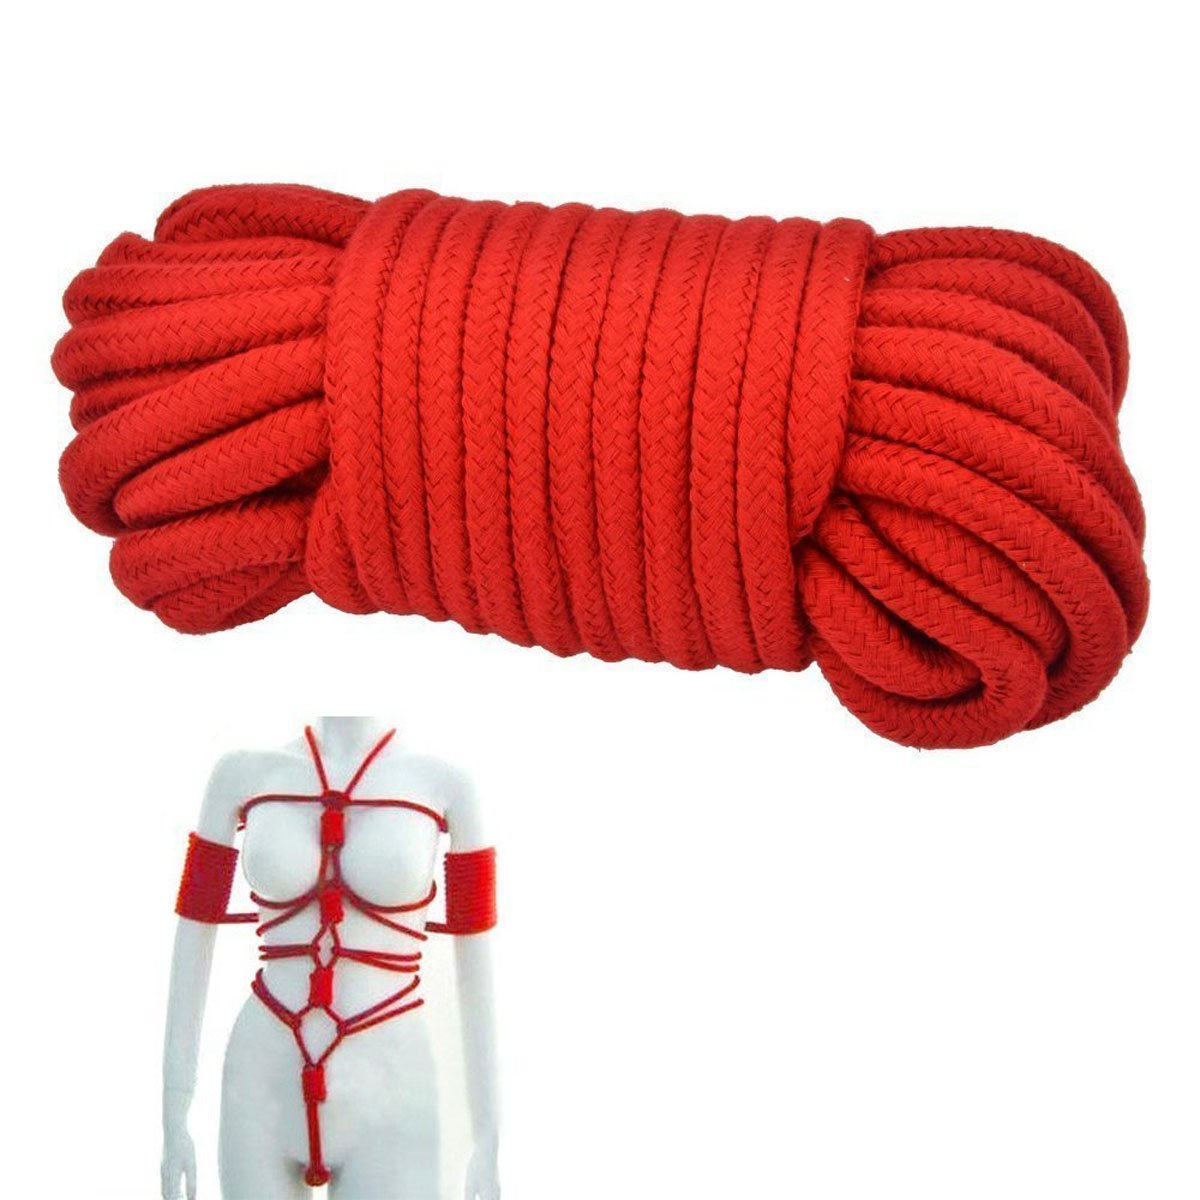 SWISH Soft Cotton Rope-32 Feet Length//10m,64-foot 20m Durable Utility Long Rope